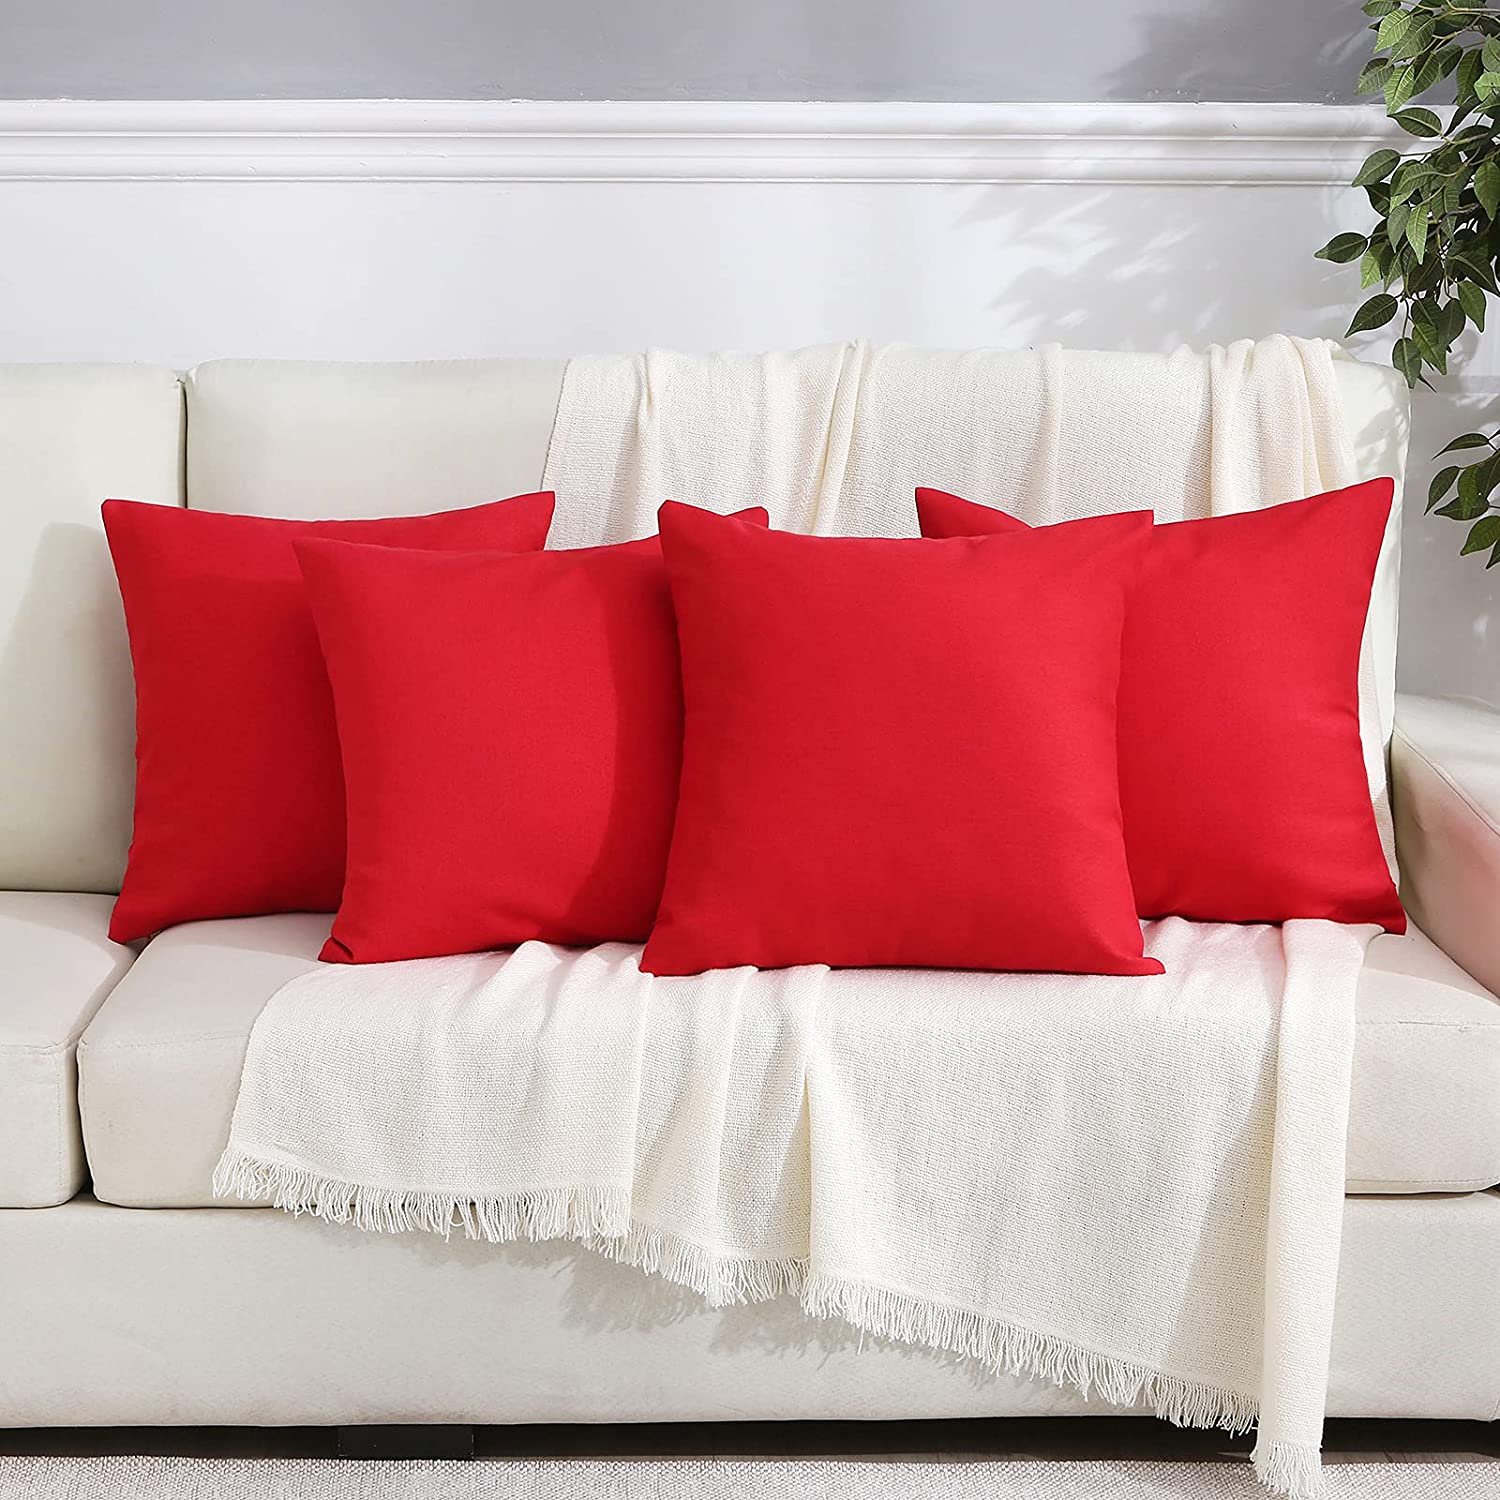 Outdoor Pillow Covers Patio Furniture Waterproof Decorative Square Outside Garden Cushion Throw Pillowcase Shell for Patio Tent Couch Pack of 4 18x18 Inch Scarlet